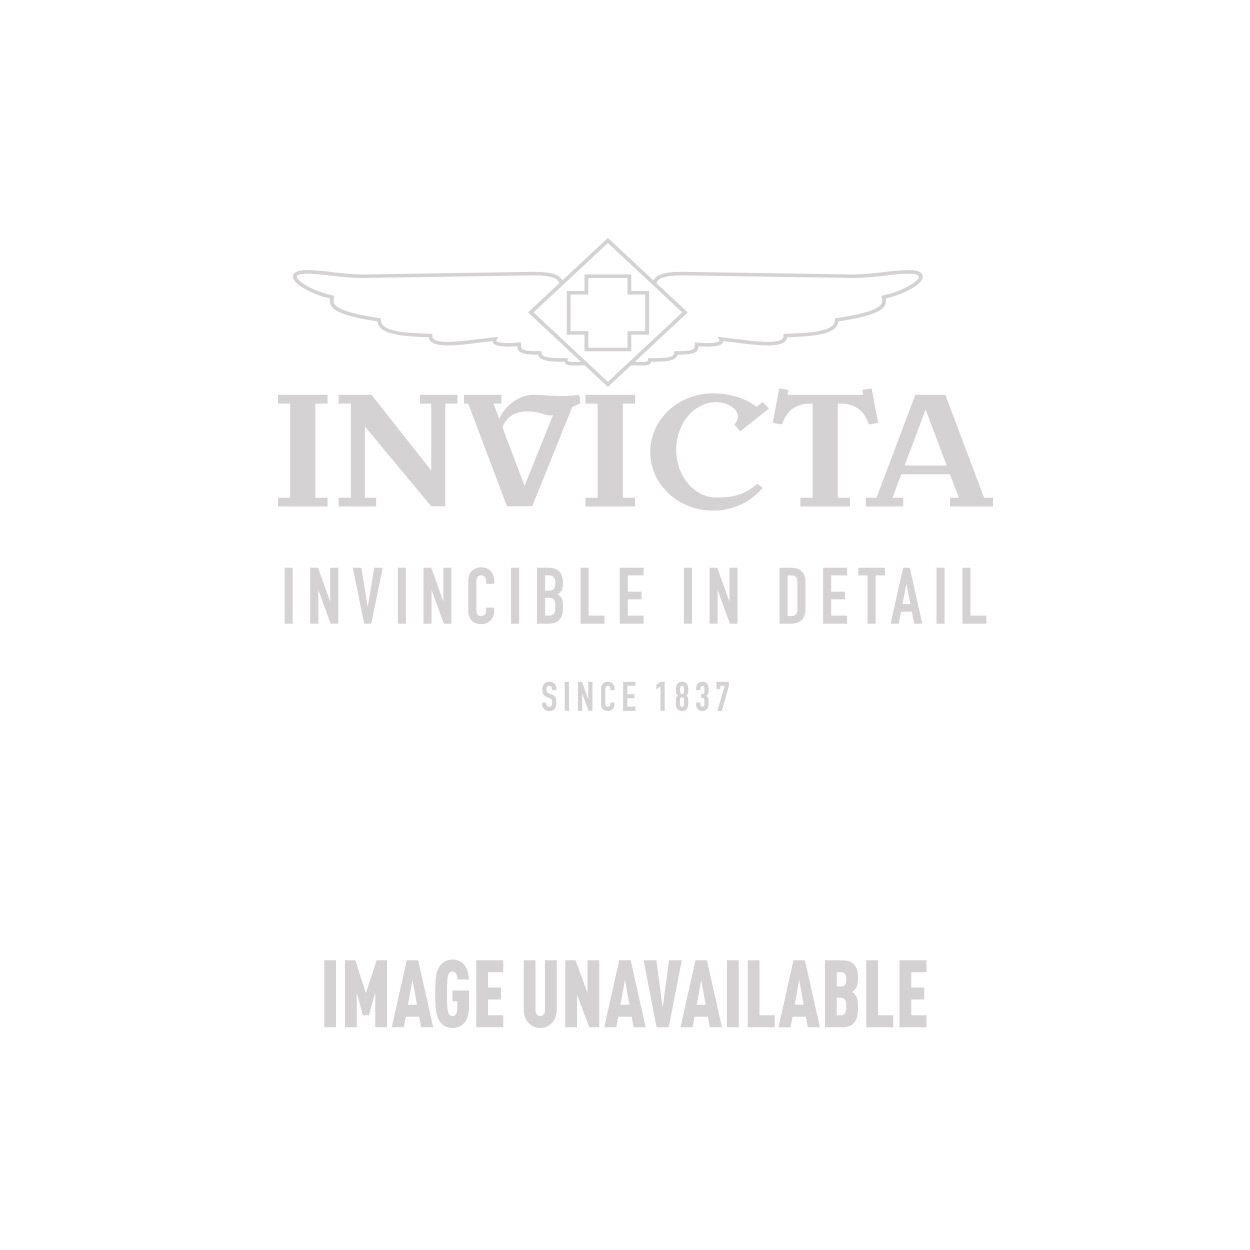 Invicta Specialty Swiss Movement Quartz Watch - Gold case with Gold tone Stainless Steel band - Model 14588